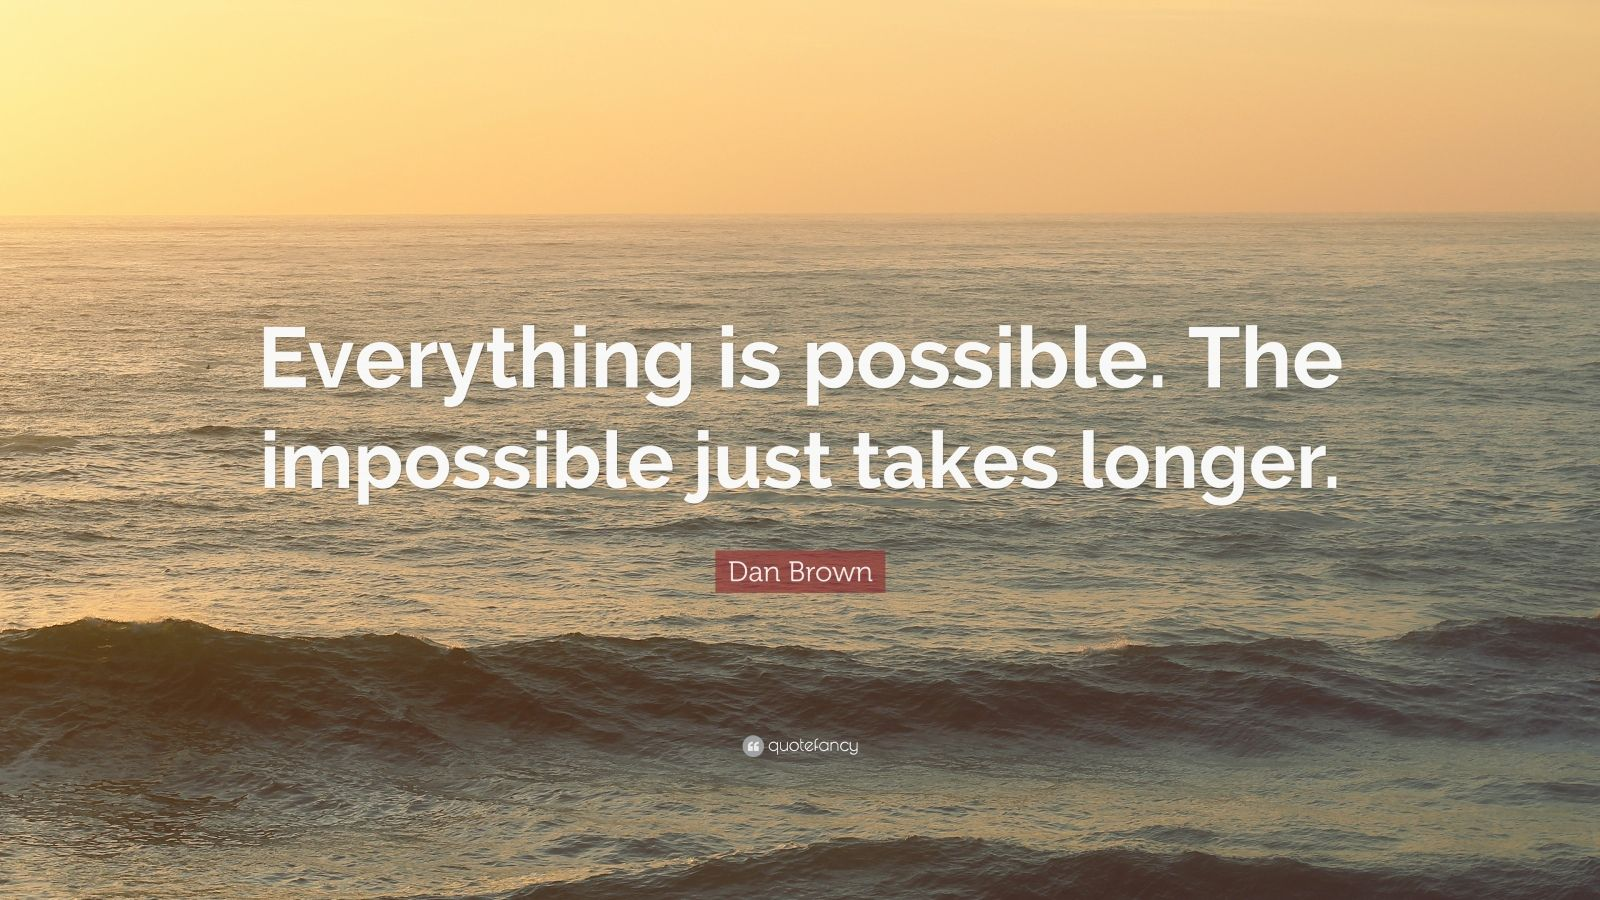 Steve Jobs Motivational Quotes Wallpaper Dan Brown Quote Everything Is Possible The Impossible